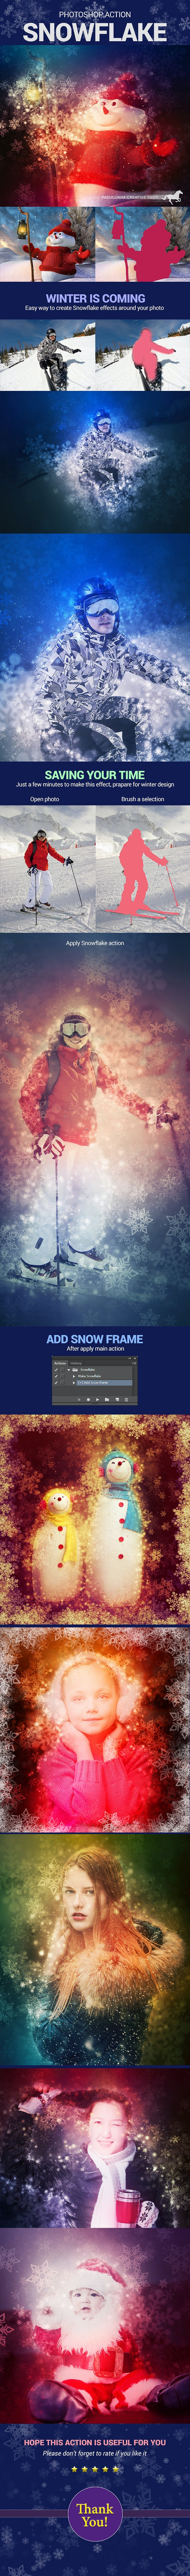 Snowflake Effects - Photo Effects Actions